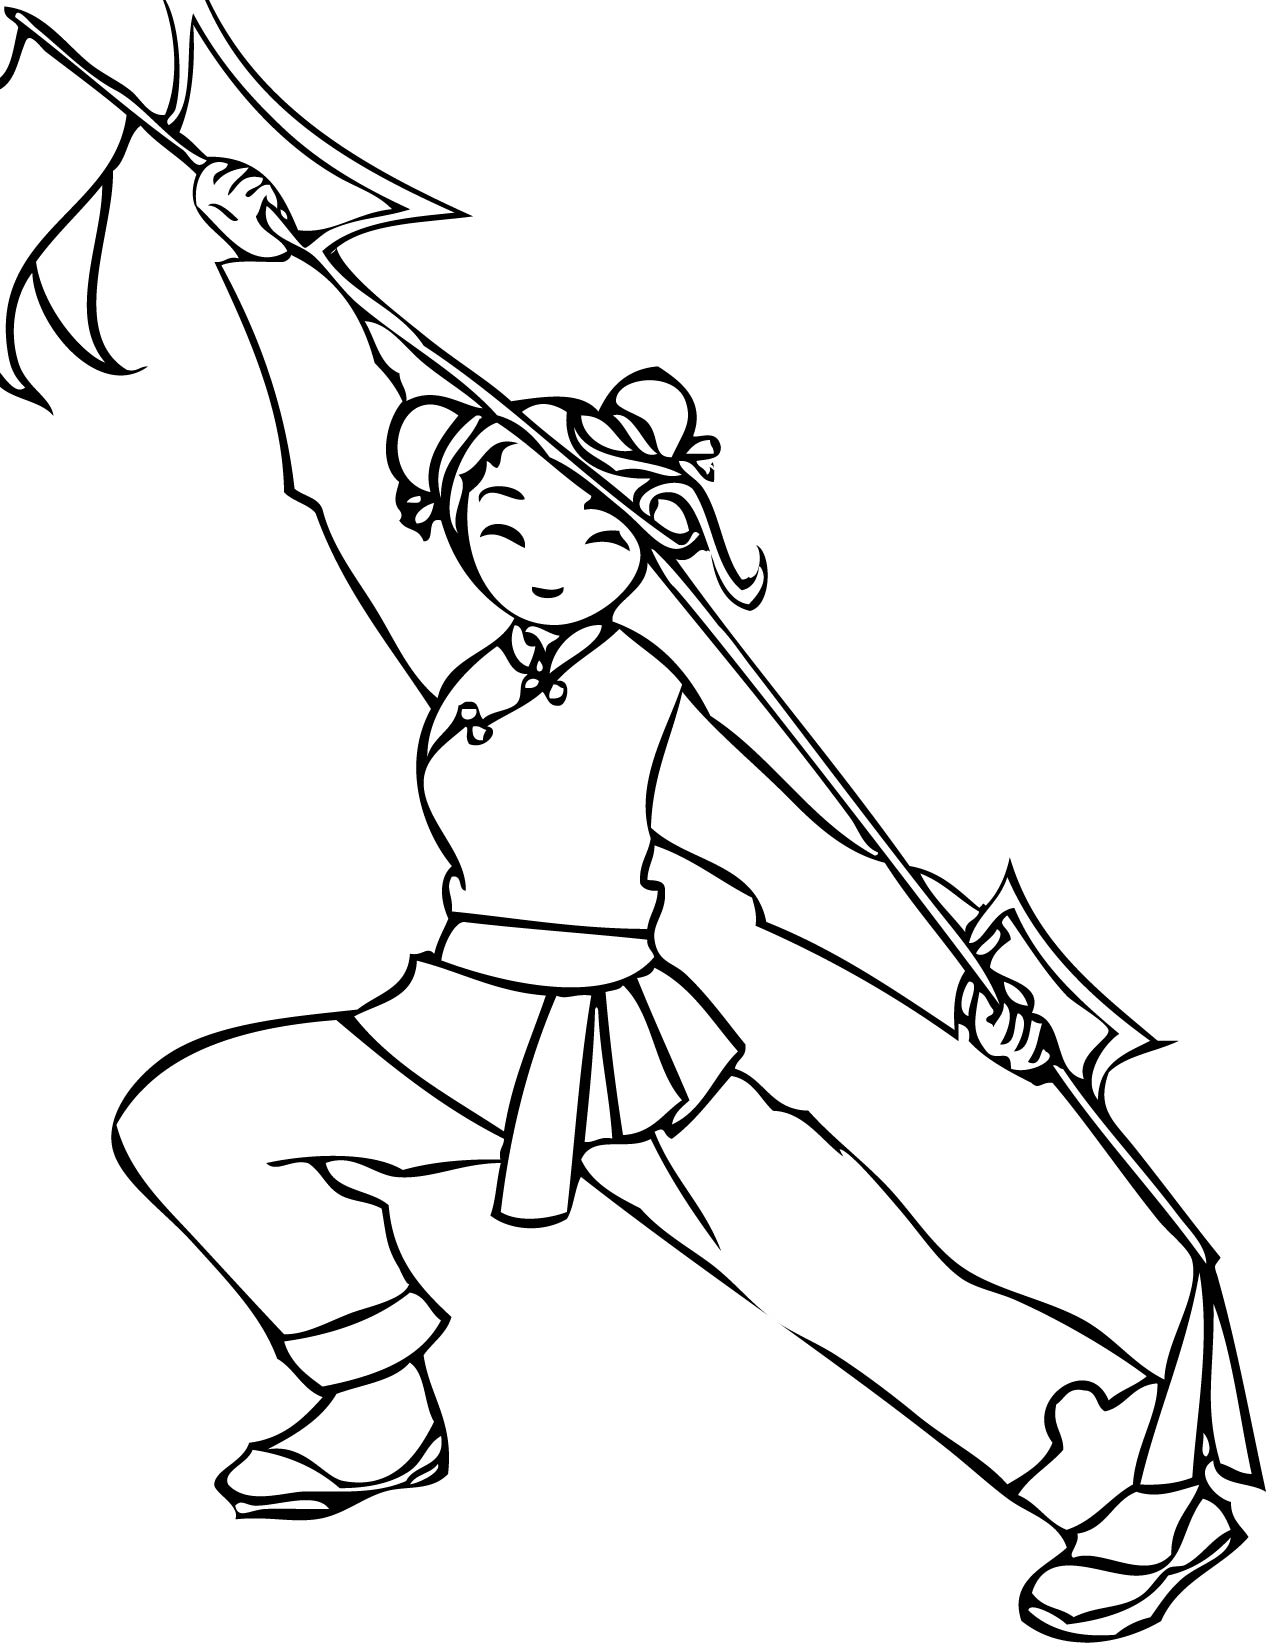 Karate Printables Coloring Pages